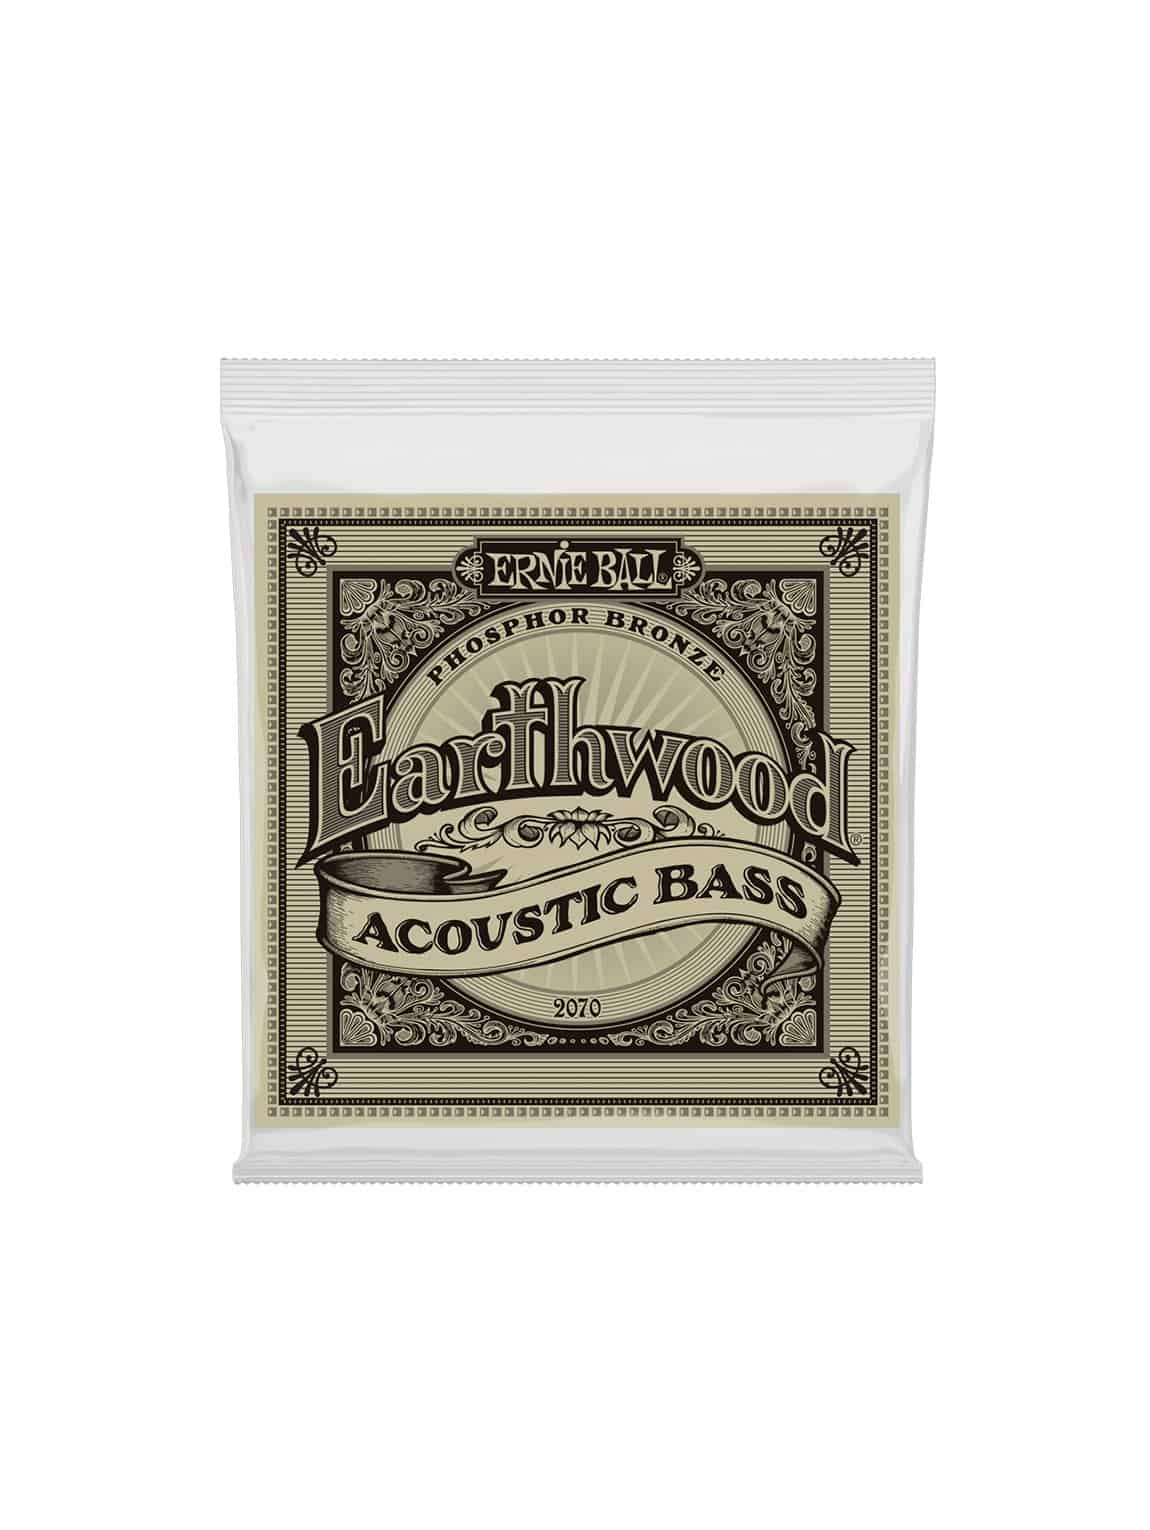 Acoustic Bass Strings- 45-95 Gauge